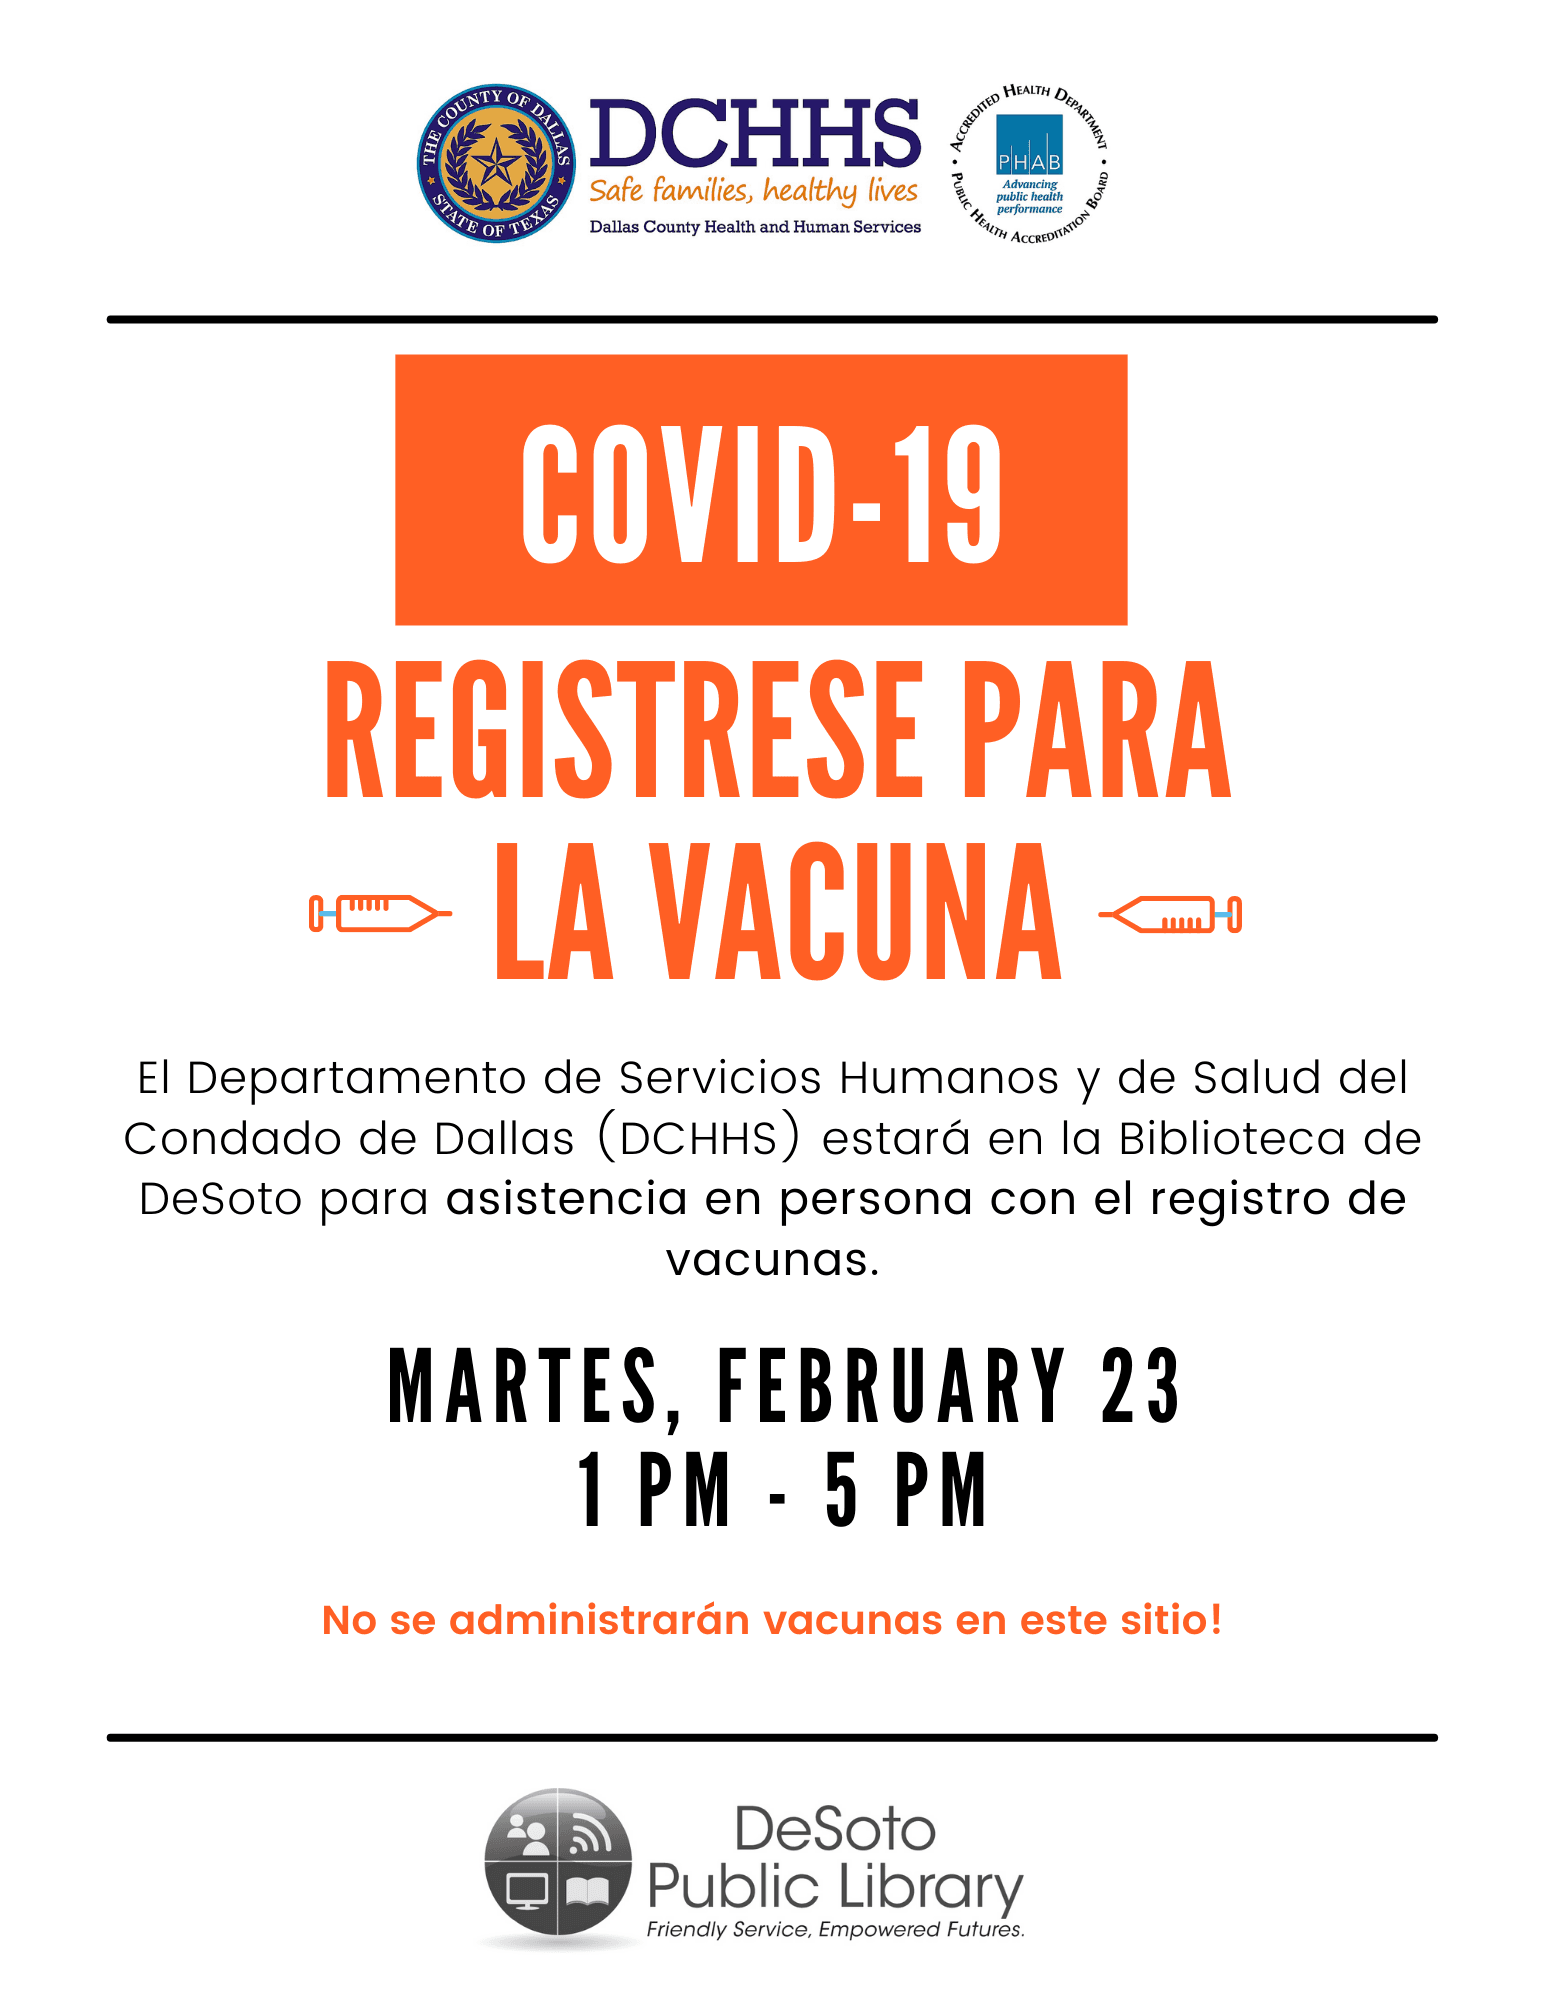 DCHHS COVID-19 Vaccination Registration-February 9, 2021 (Spanish)